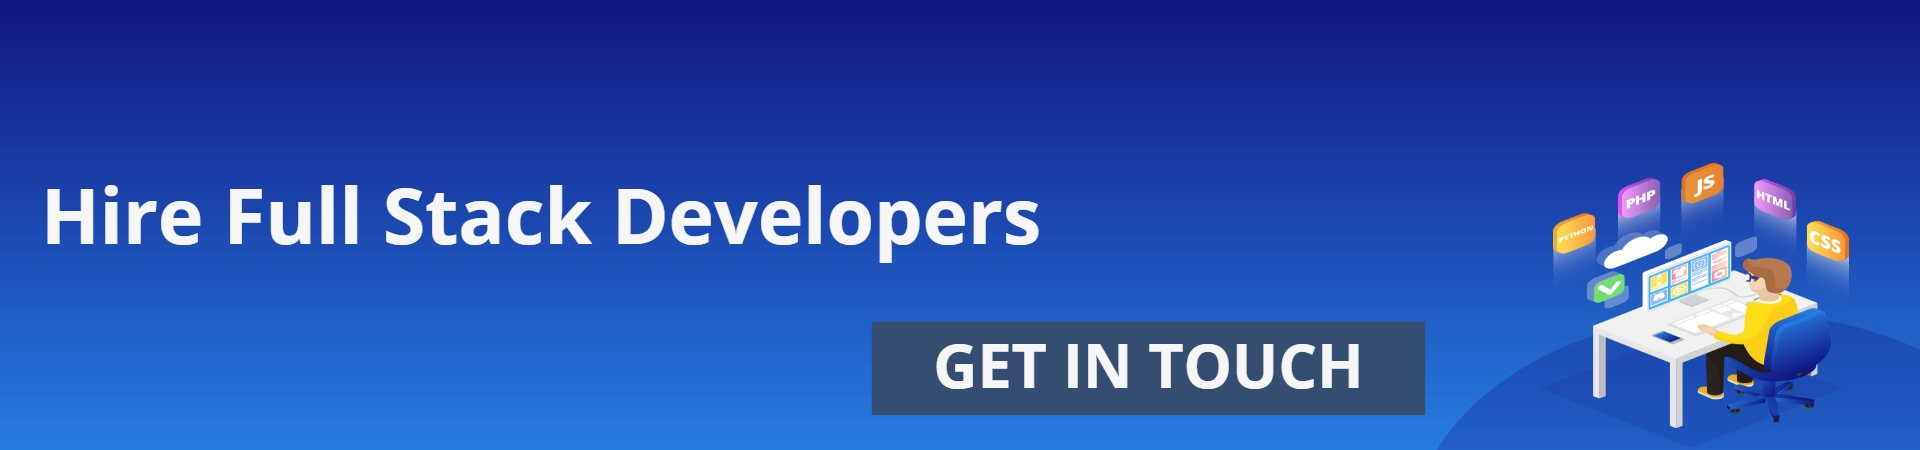 Rlogical Techsoft - Hire Full Stack Developers